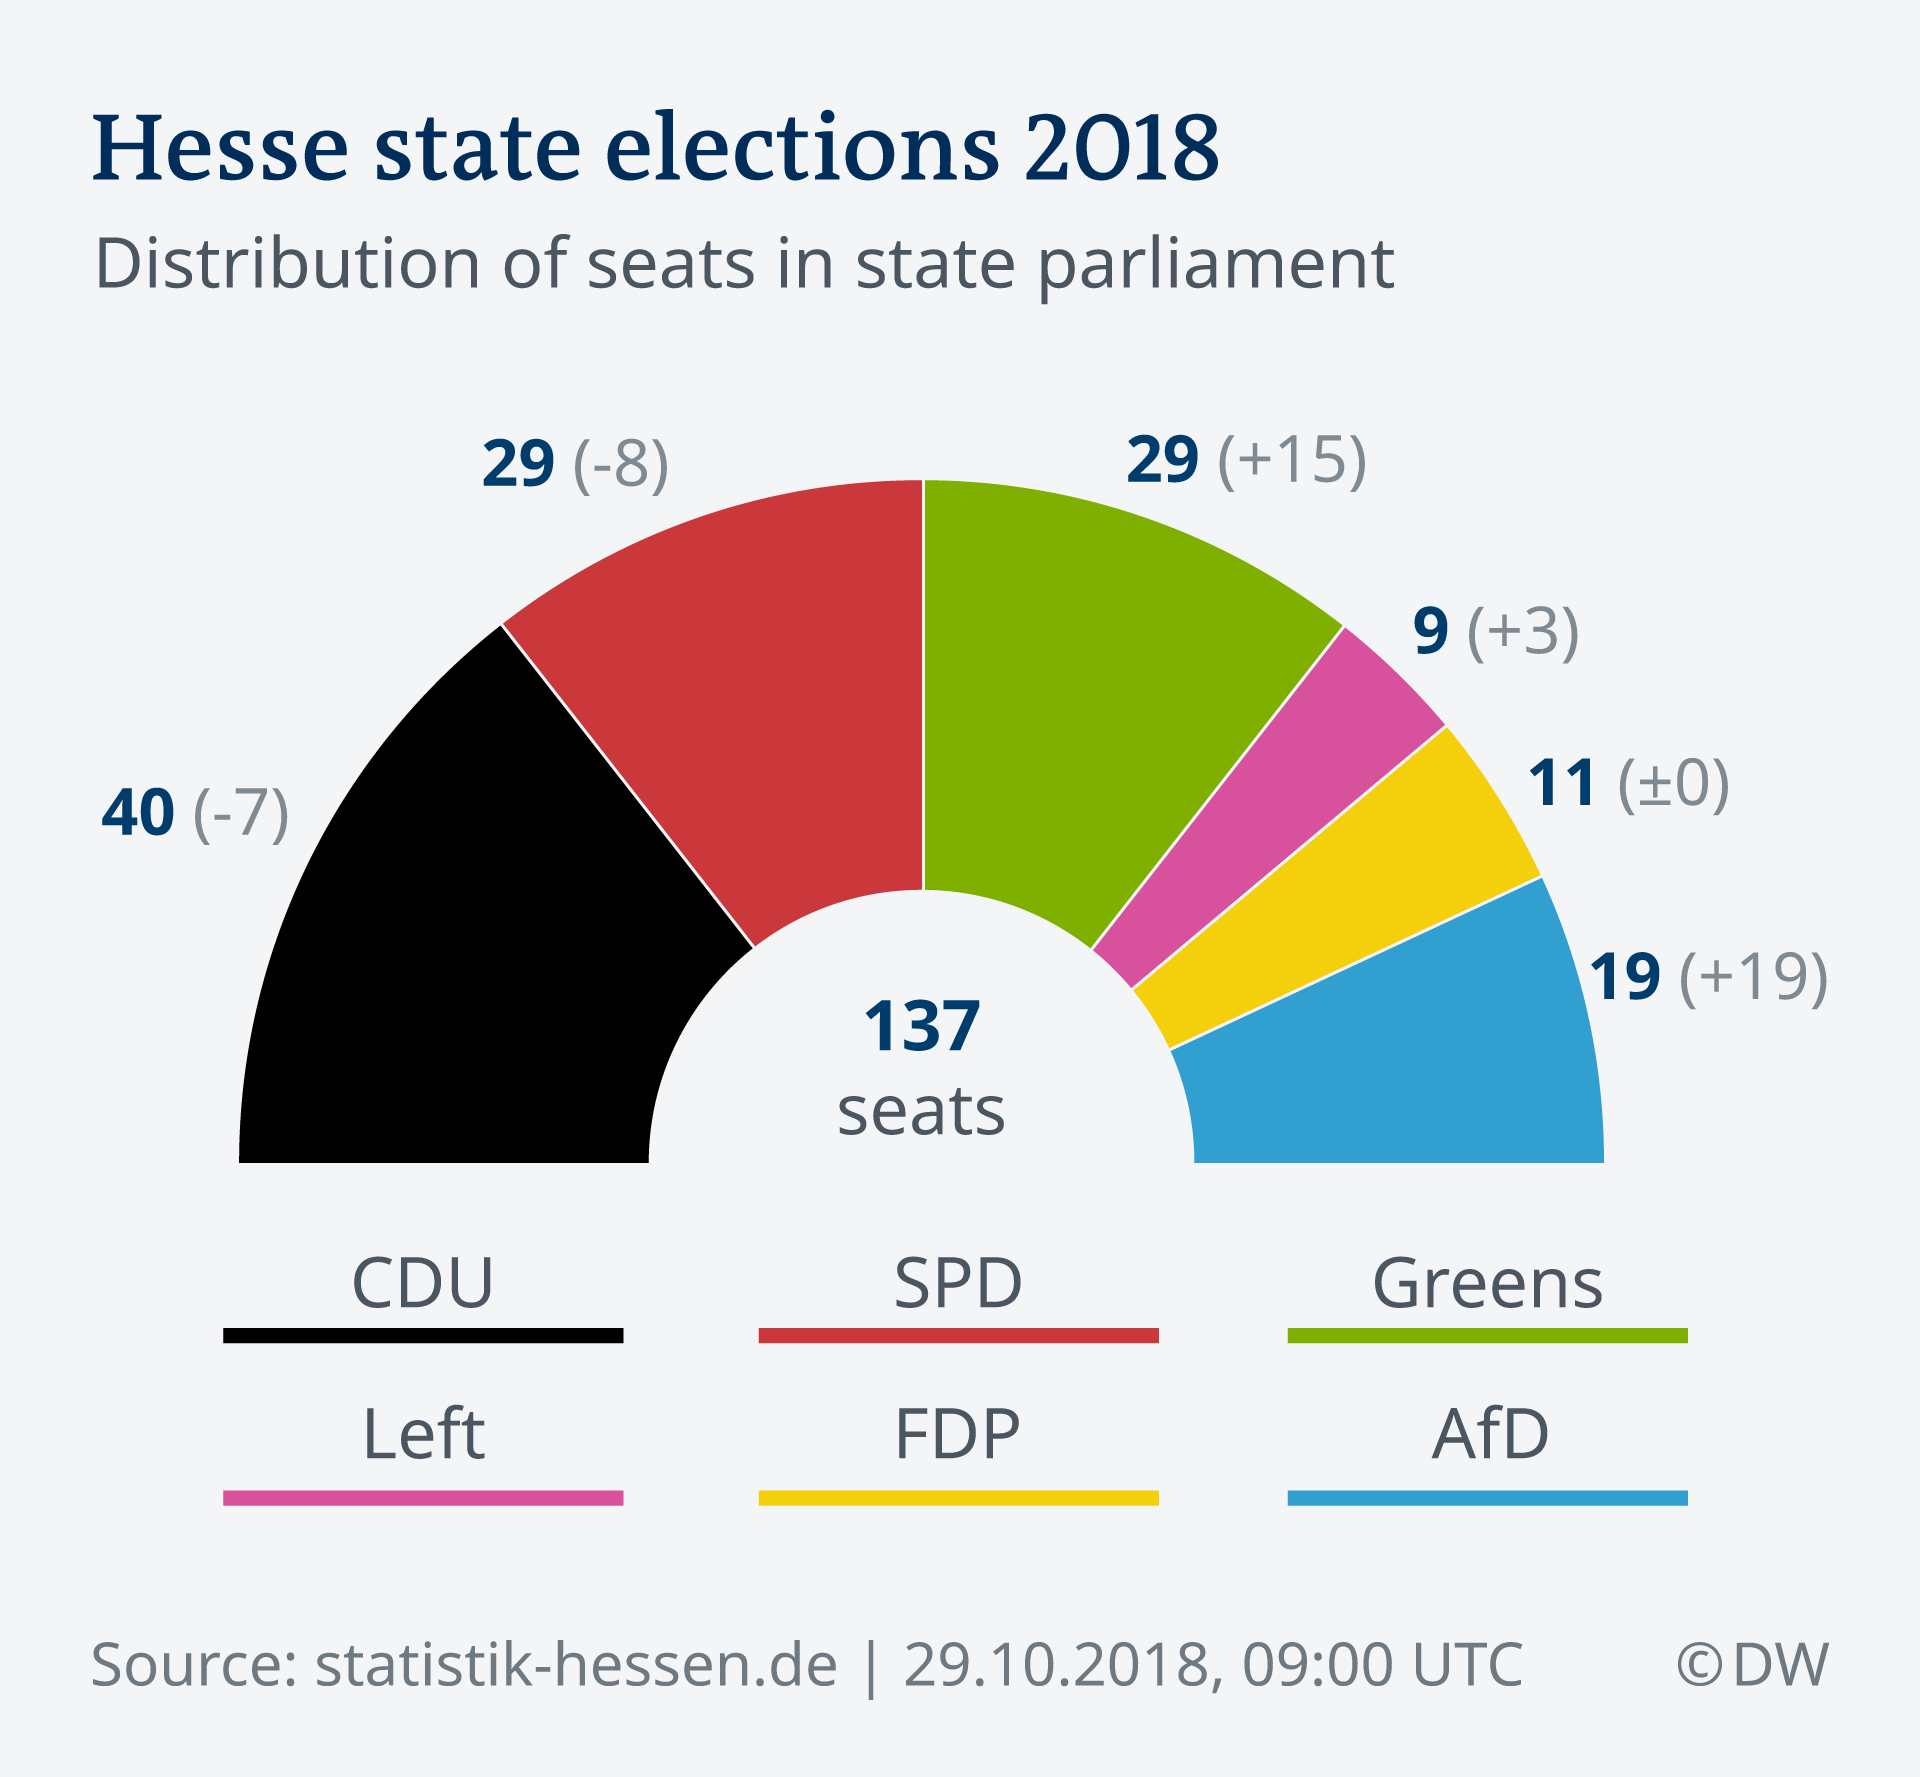 A graphic showing the distribution of seats in Hesse state parliament